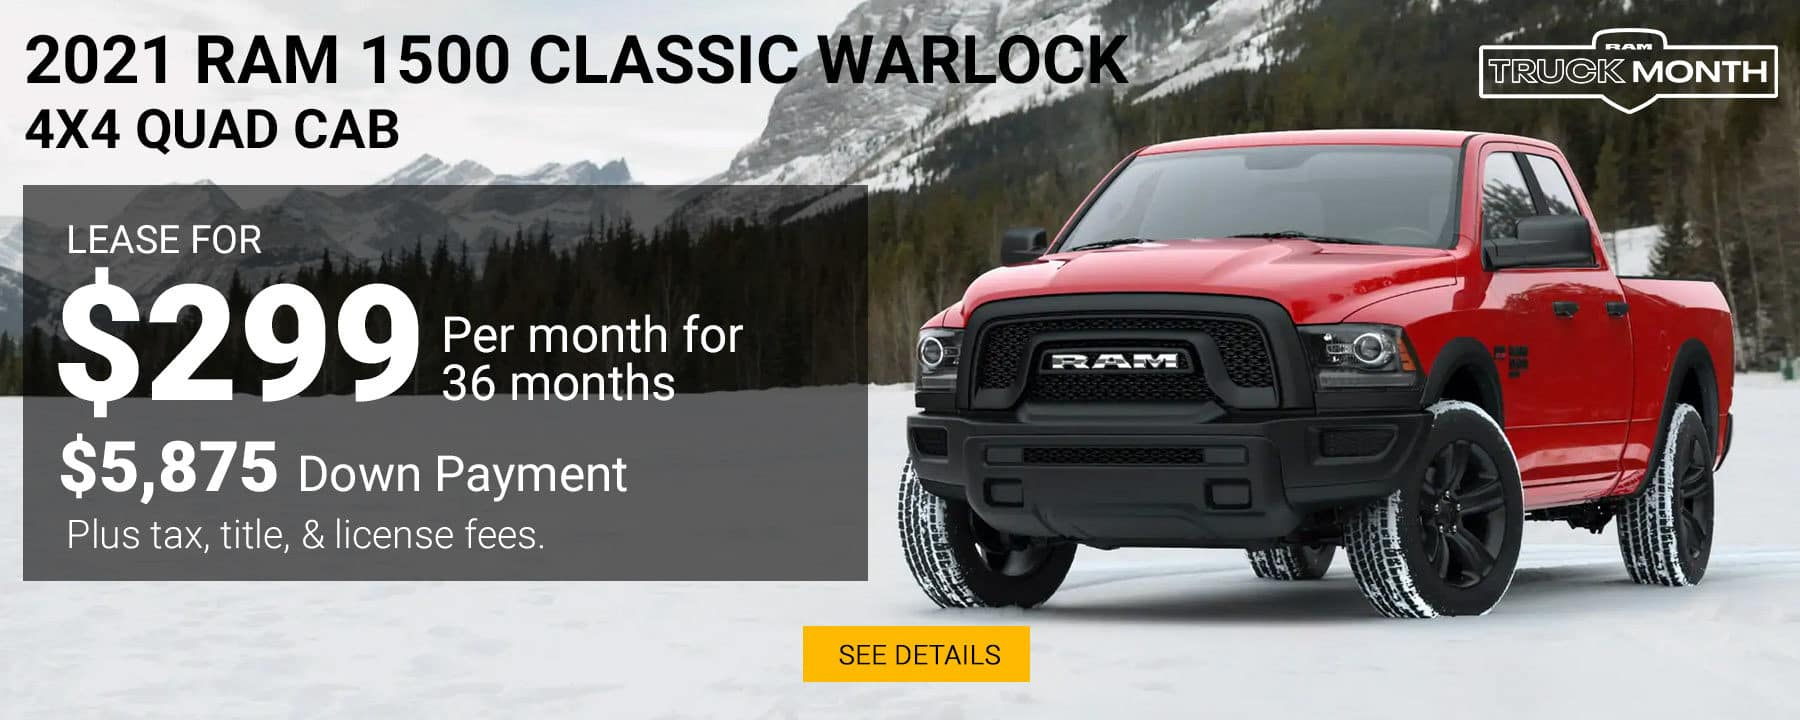 During the RAM Truck Month, Lease a 2020 RAM 1500 Classic Warlock for $299 per month with $5,875 down